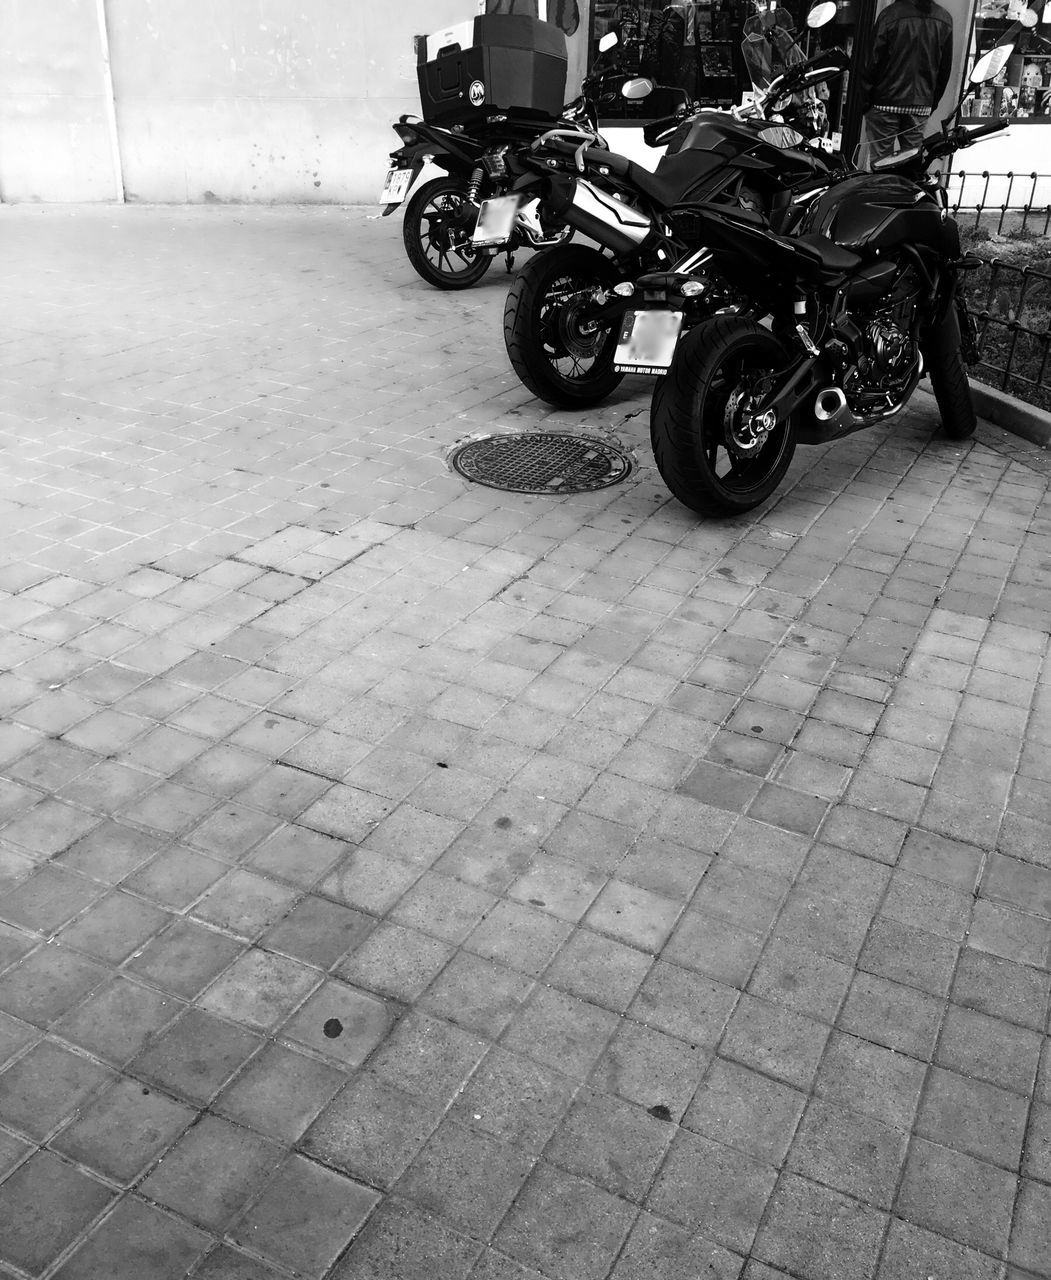 transportation, mode of transportation, city, motorcycle, land vehicle, street, day, outdoors, wheel, no people, travel, footpath, stationary, architecture, side view, road, scooter, tiled floor, paving stone